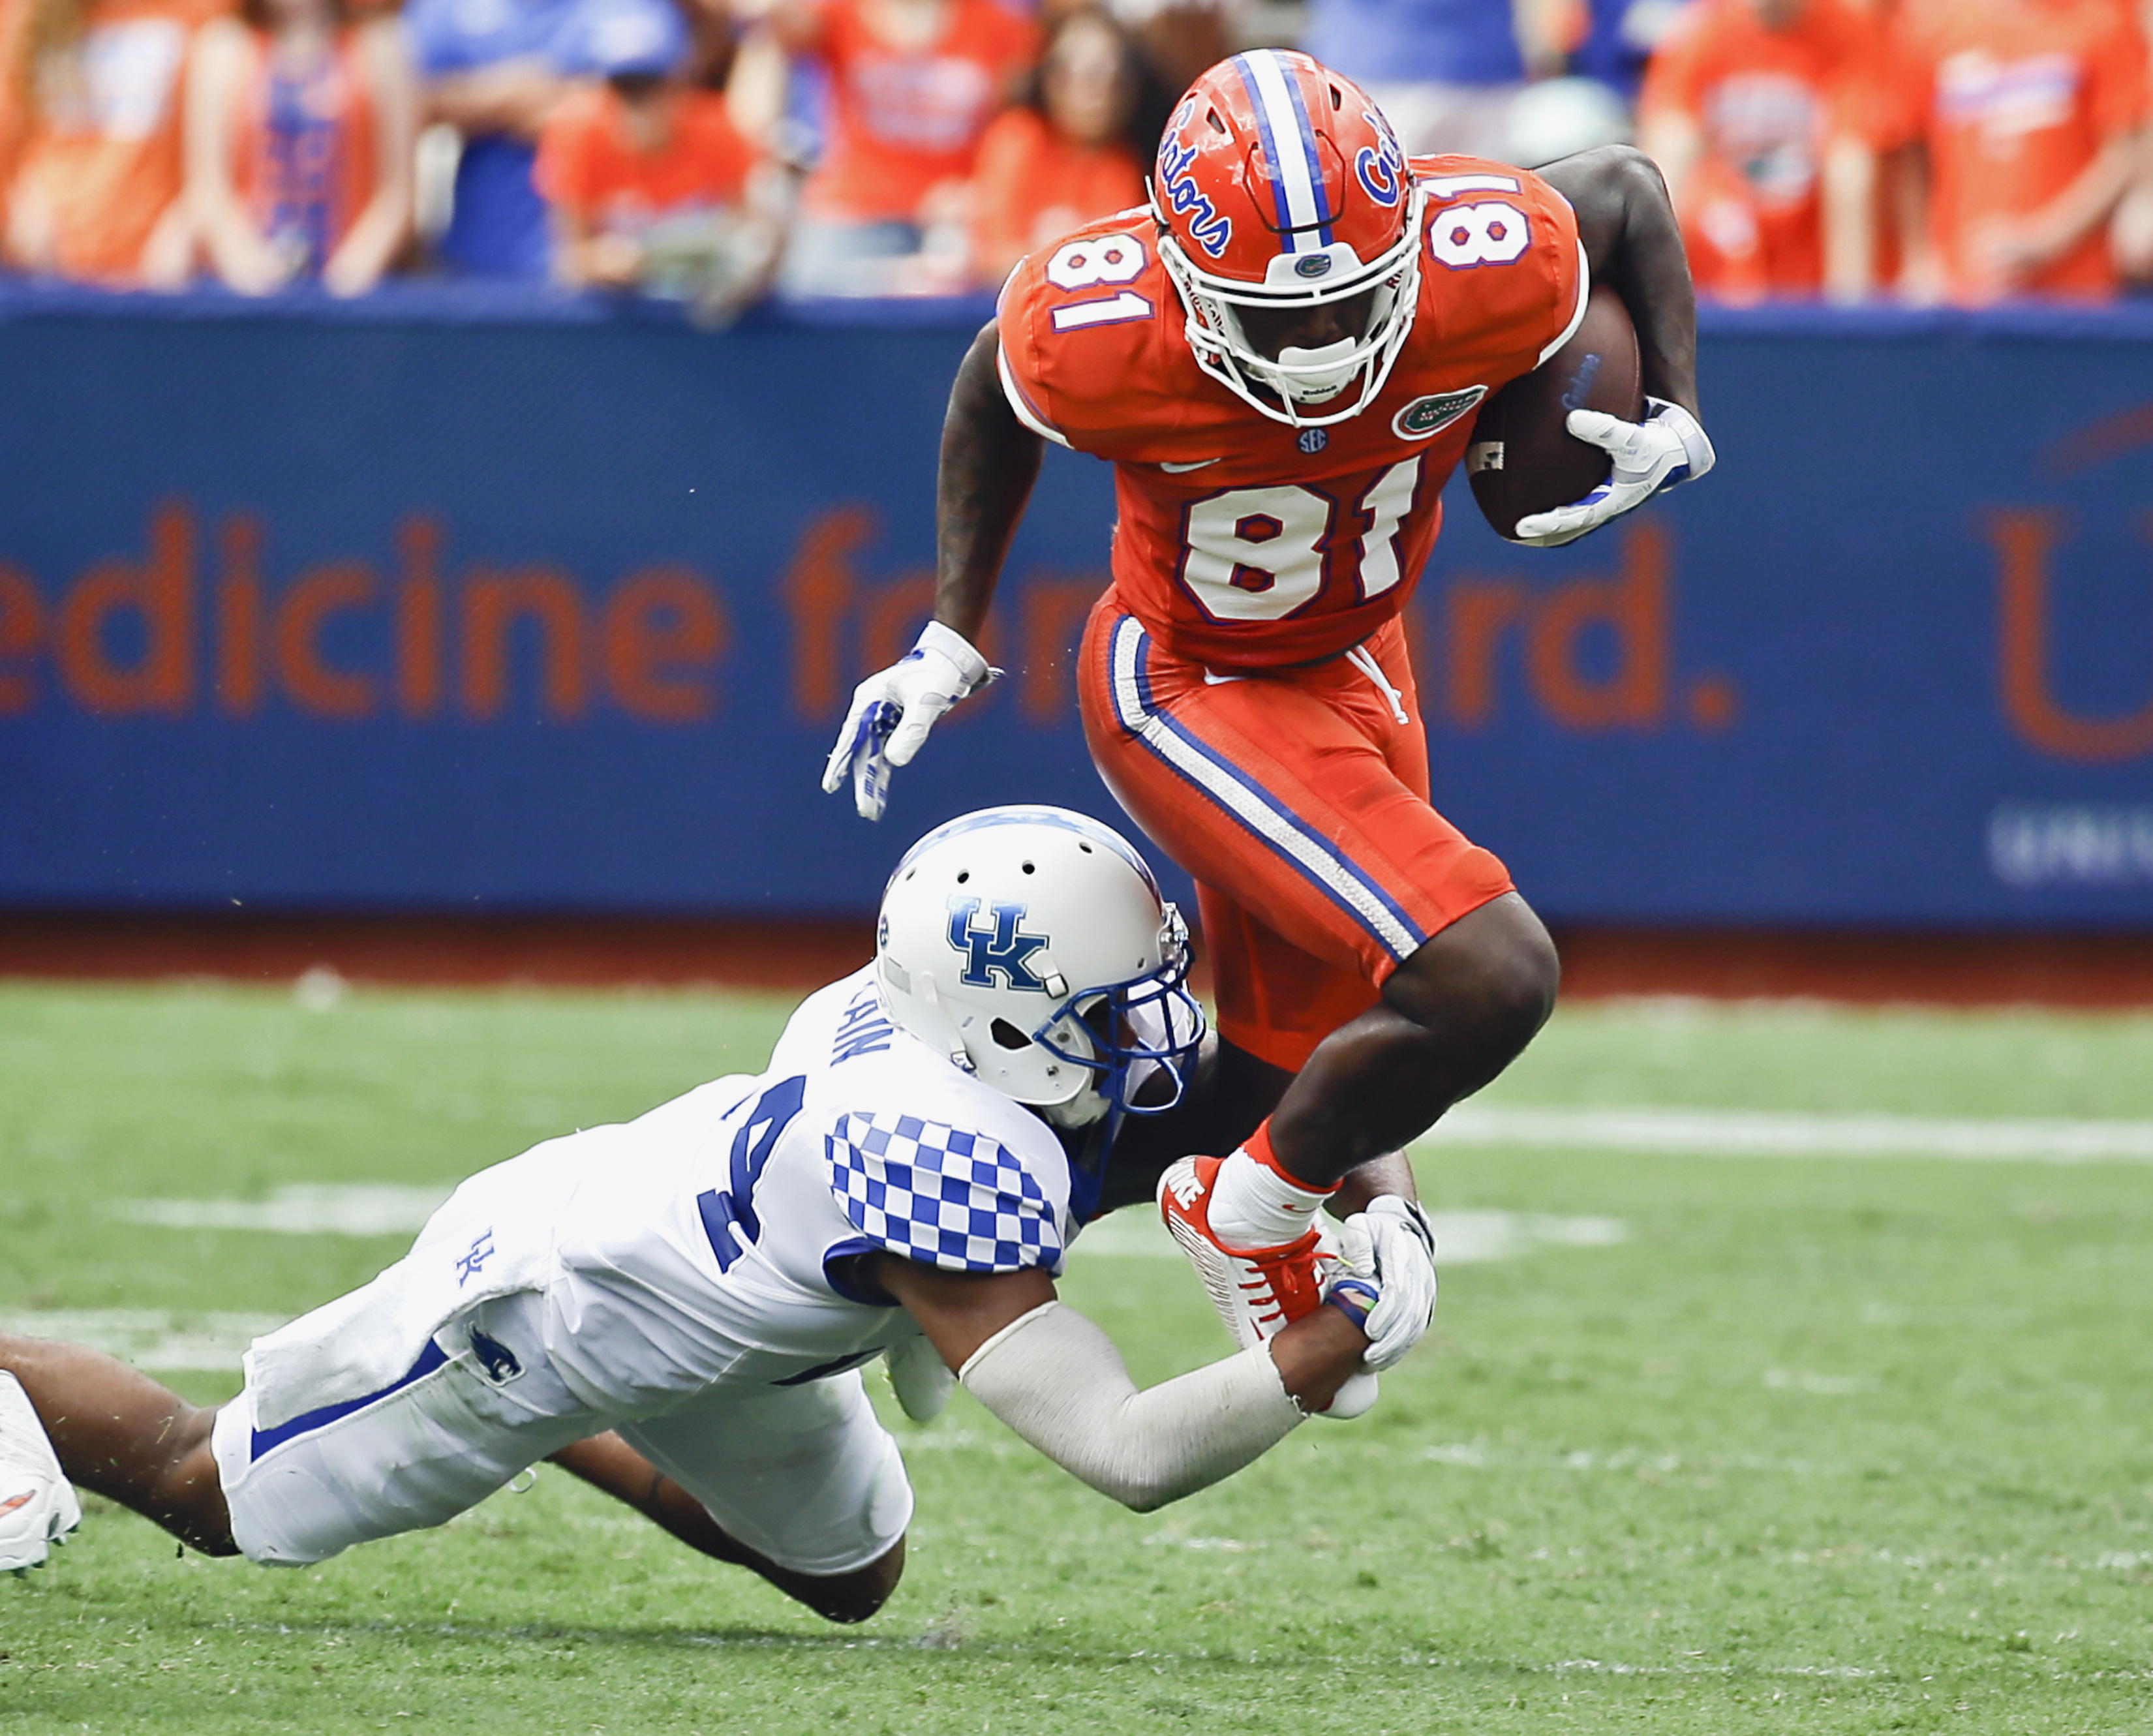 Florida wide receiver Antonio Callaway (81) is tackled by Kentucky defensive back Blake McClain after a reception in the first half of an NCAA college football game, Saturday, Sept. 10, 2016, in Gainesville, Fla. (AP Photo/John Raoux)